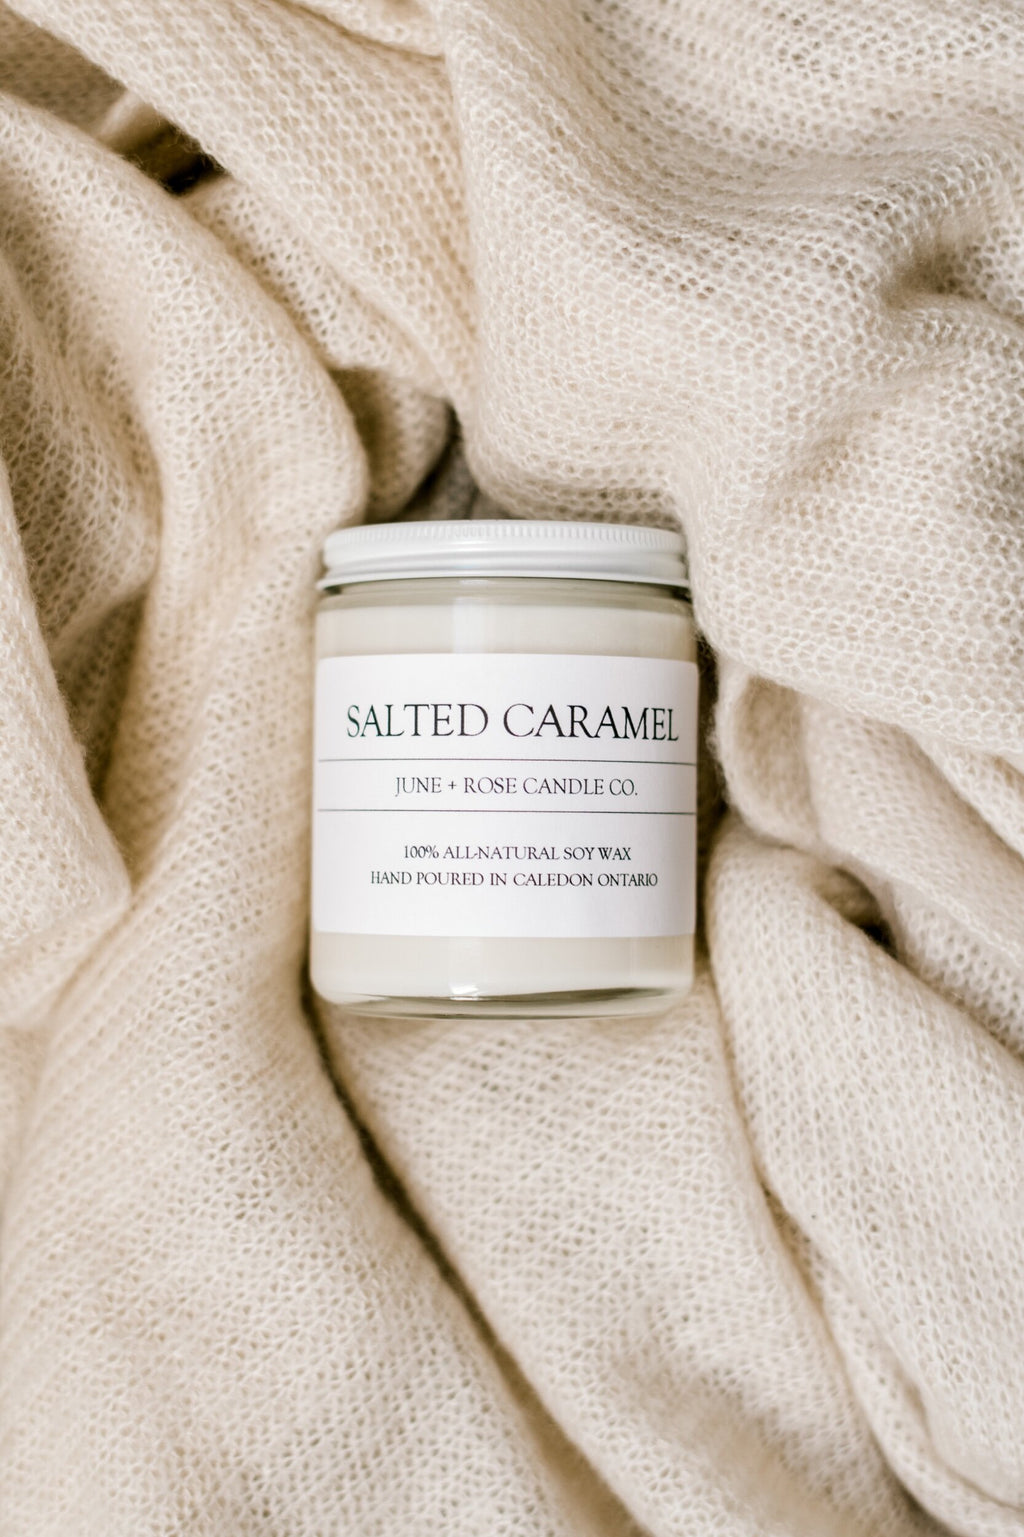 Salted Caramel Candle (June+Rose Candle Co)